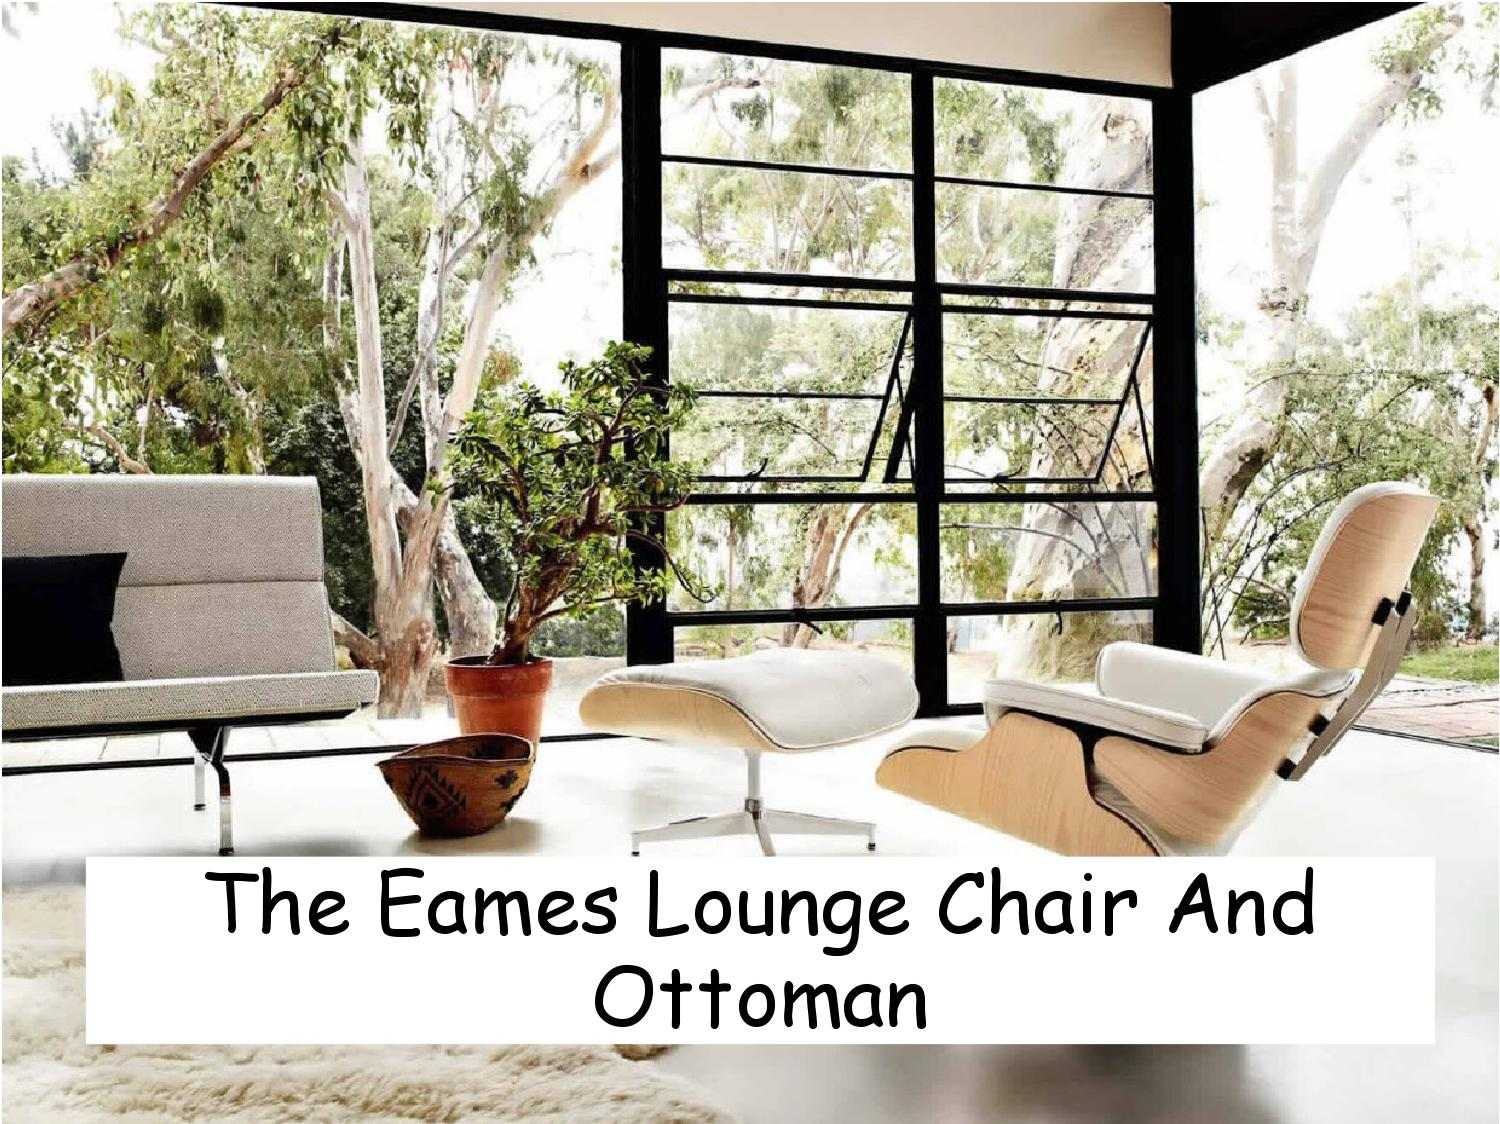 Eames Lounge Chair Living Room the eames lounge chair and ottomanpeter dawson - issuu